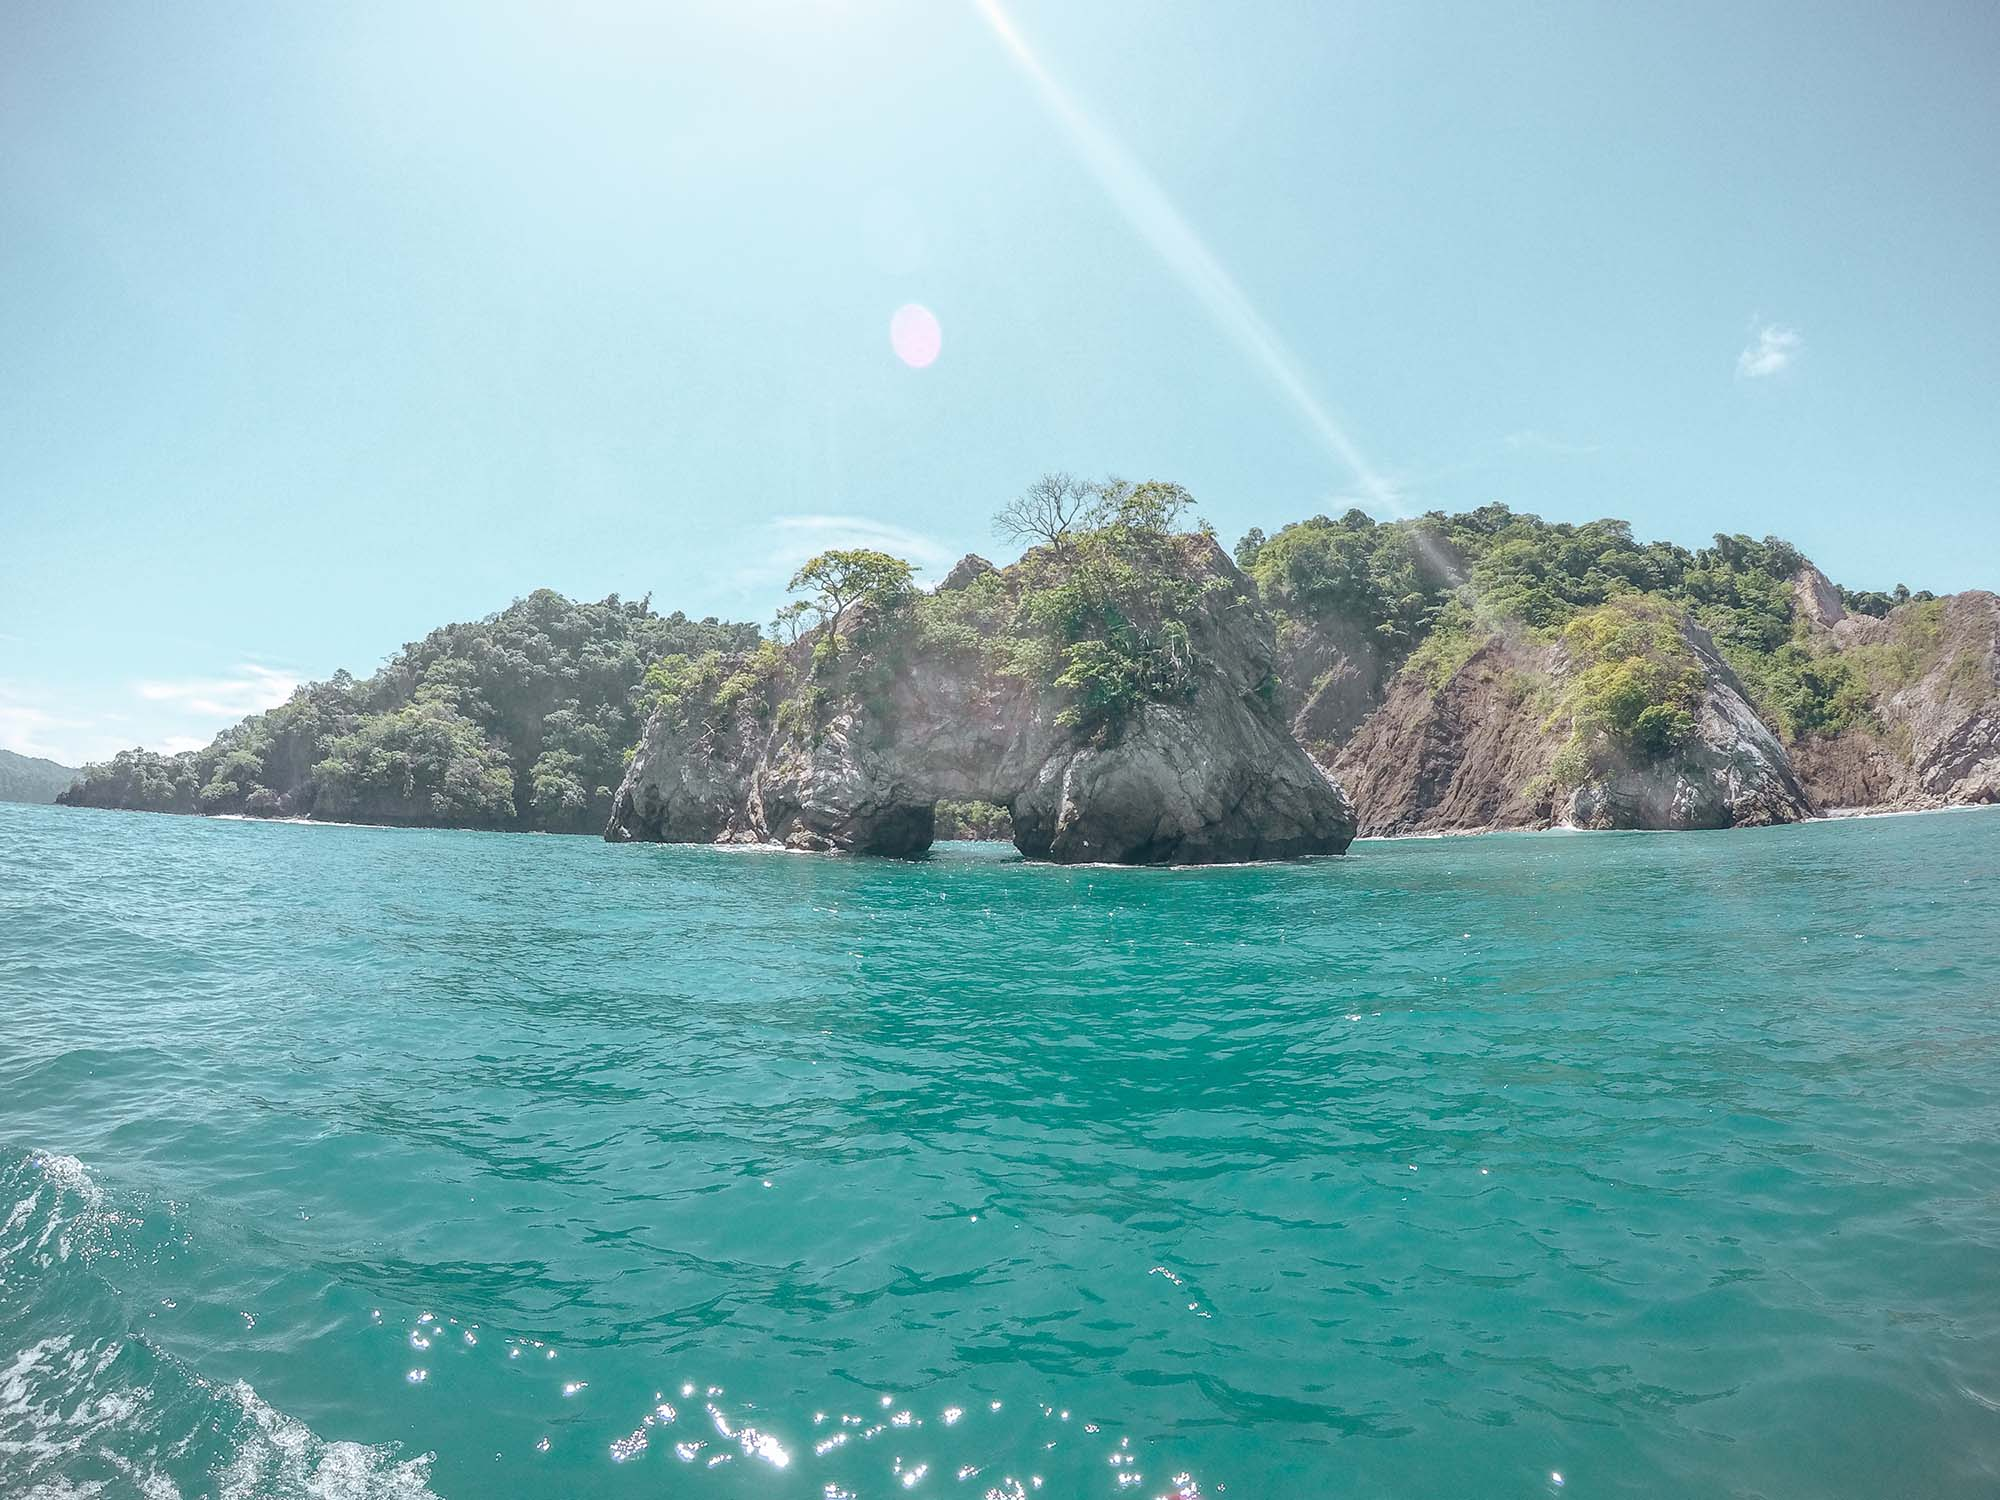 View on the boat ride over to Tortuga Island Costa Rica